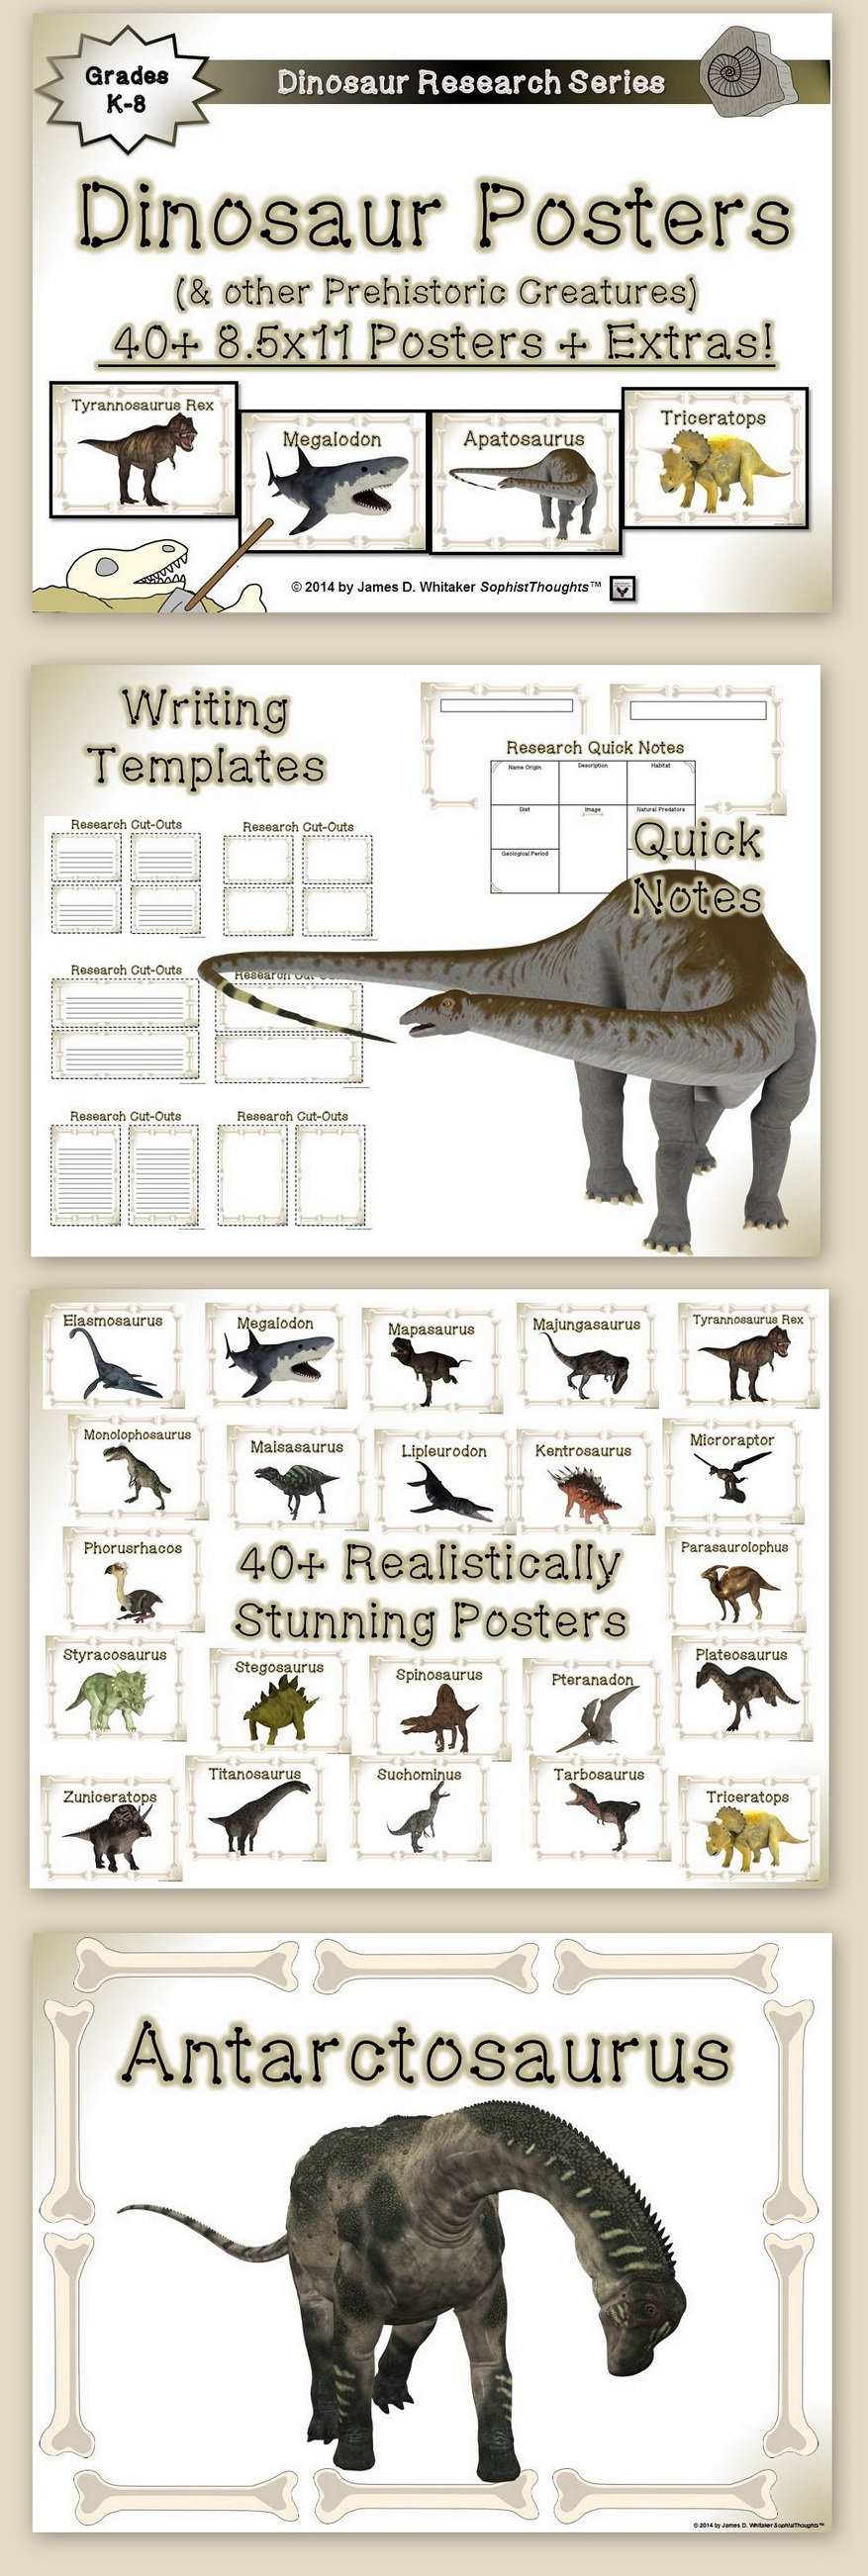 Provided Is Over 40 Posters Prominently And Realistically Displaying Dinosaurs And Other Prehistoric Creatures Dinosaur Posters Prehistoric Creatures Dinosaur [ 2604 x 877 Pixel ]